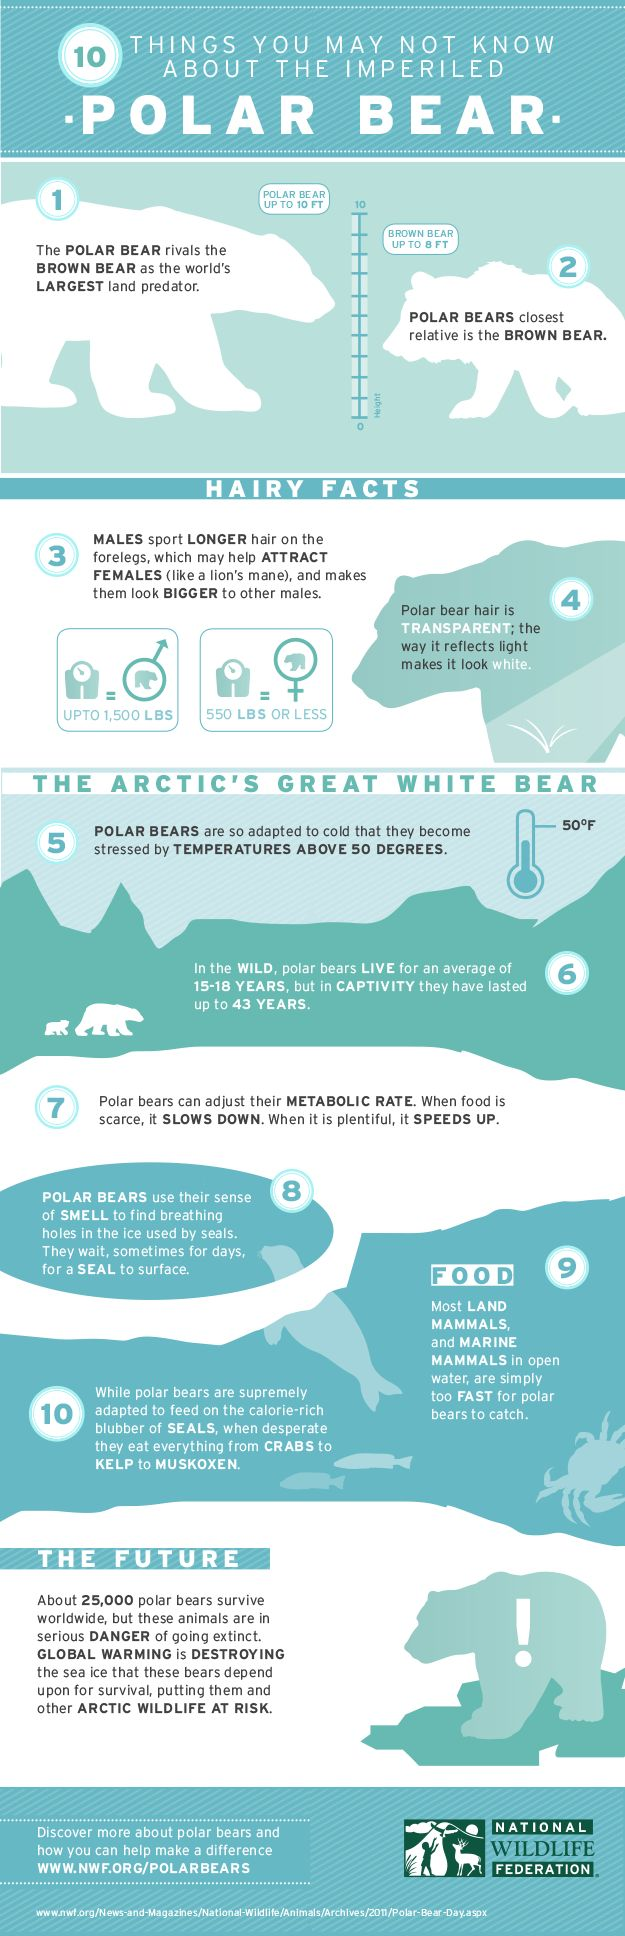 10 Things You May Not Know About Polar Bears